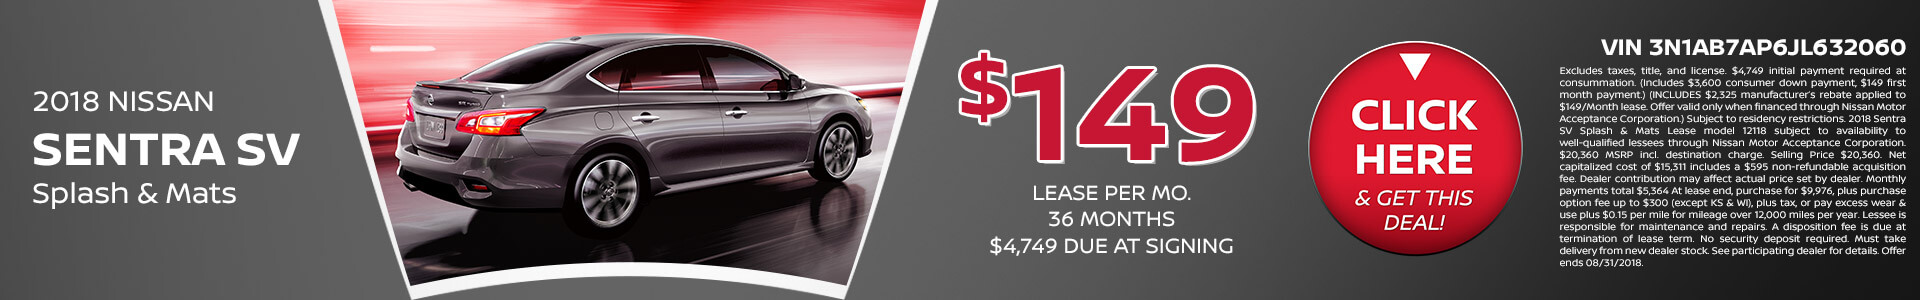 Sentra Lease $149